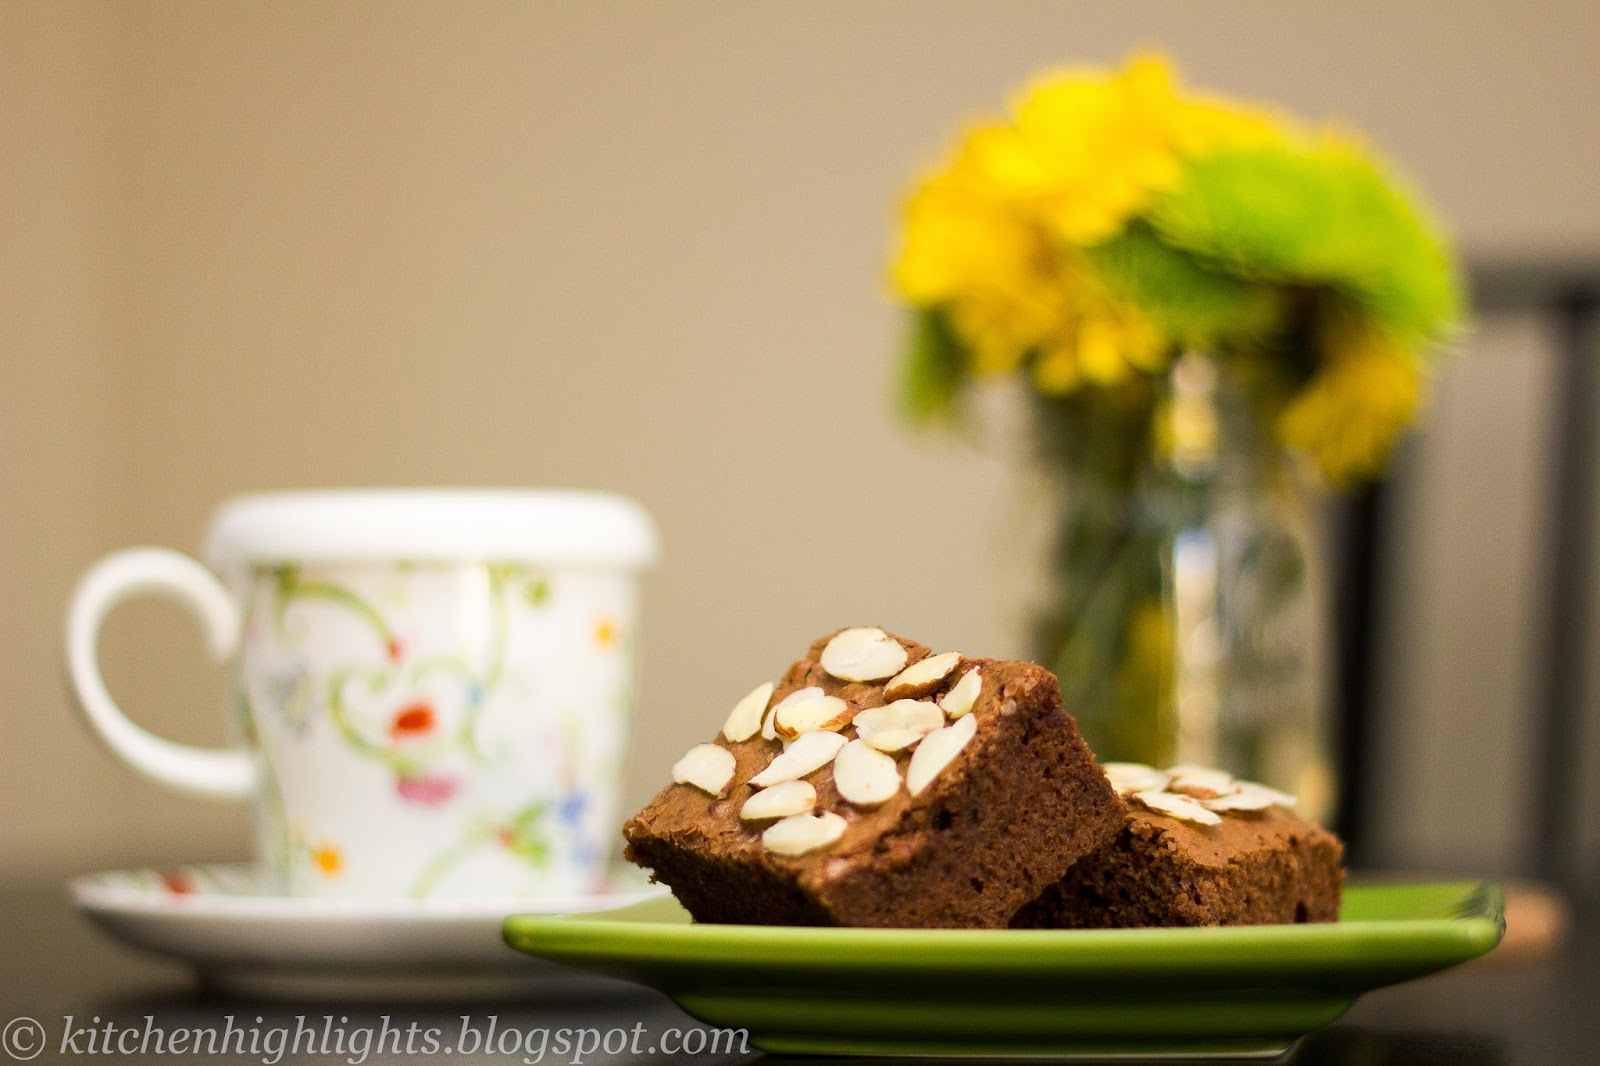 Chocolate brownies are a typical American dessert that is considered a cross between a cookie and a cake